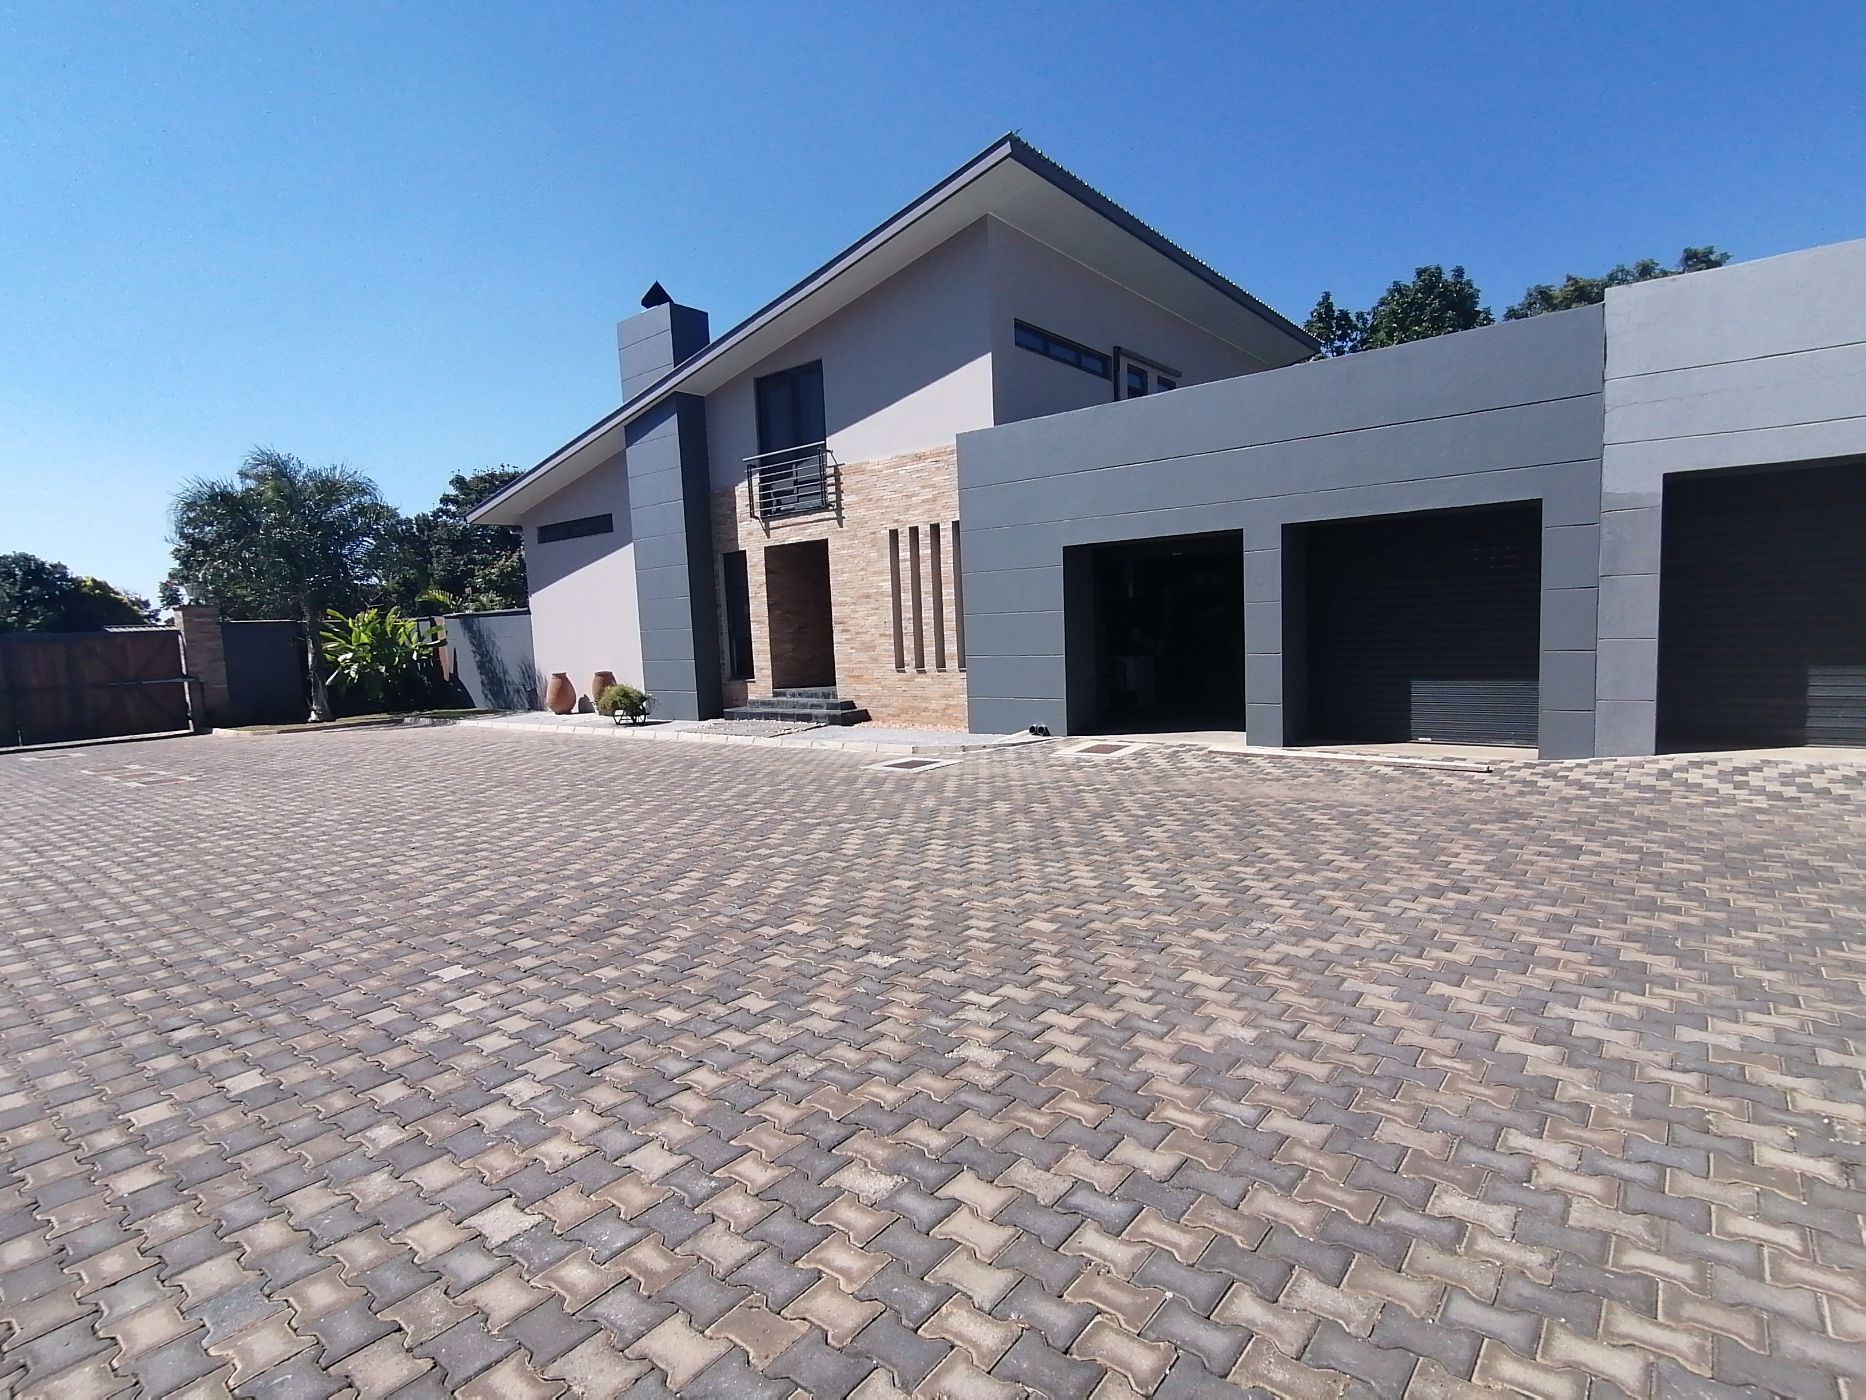 4 bedroom house to rent in Woodlands (Zambia)